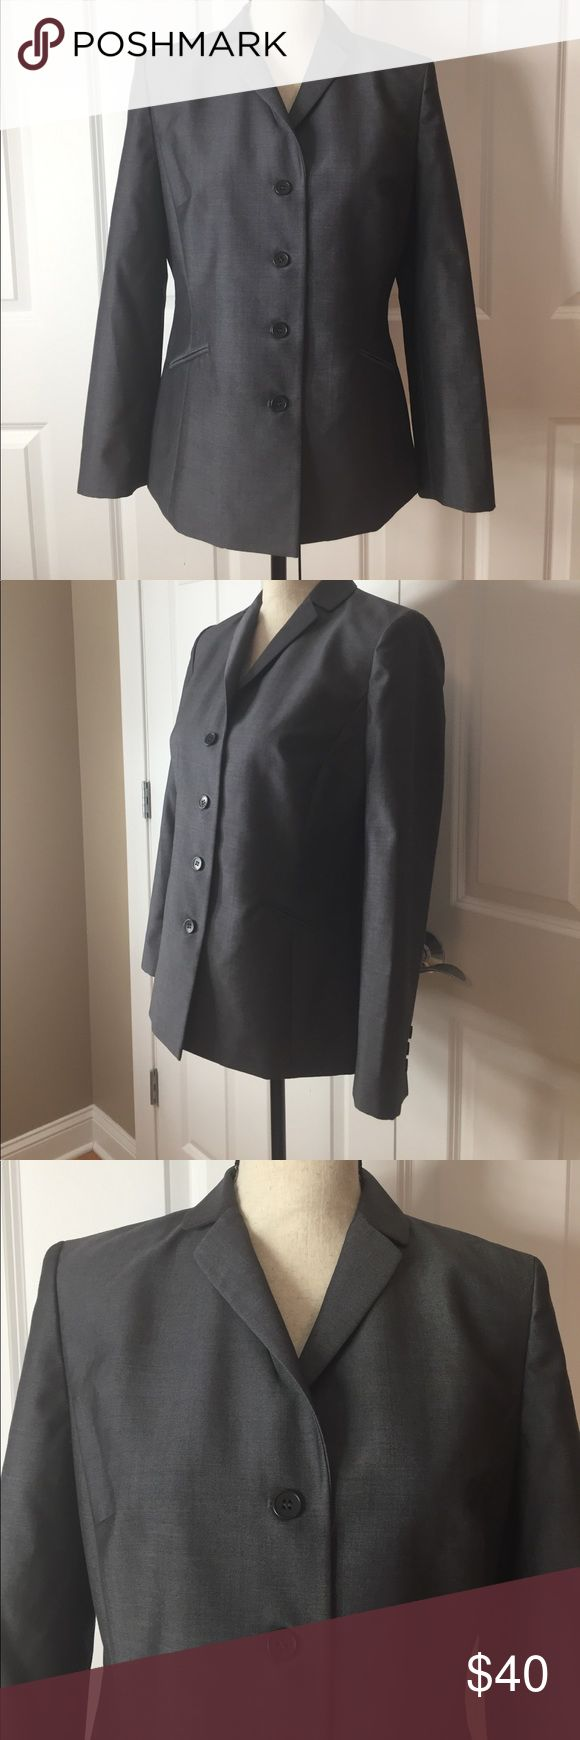 Ann Taylor Loft Women's Suit Jacket Ann Taylor Loft Women's suit jacket - gray. Size 8 petite. Great quality that lasts forever and aohas an inner lining. 🔸Fast shipping 🔸No trades 🔸Offers are welcomed 💕 Ann Taylor Jackets & Coats Blazers